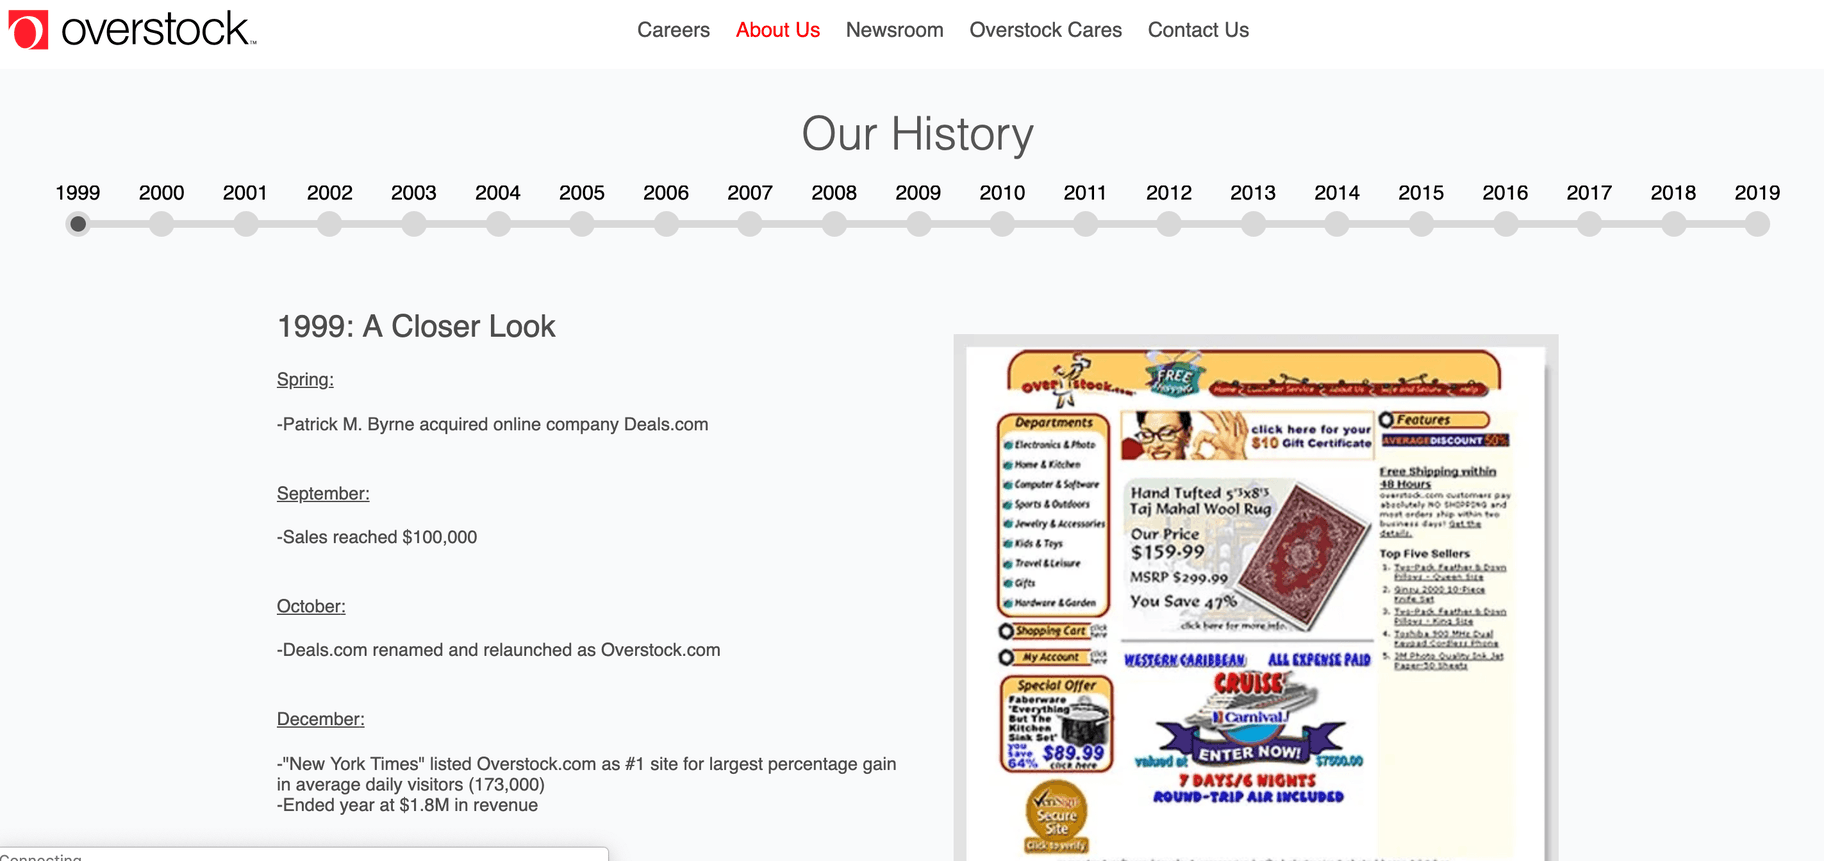 Overstock About Us Page Sample